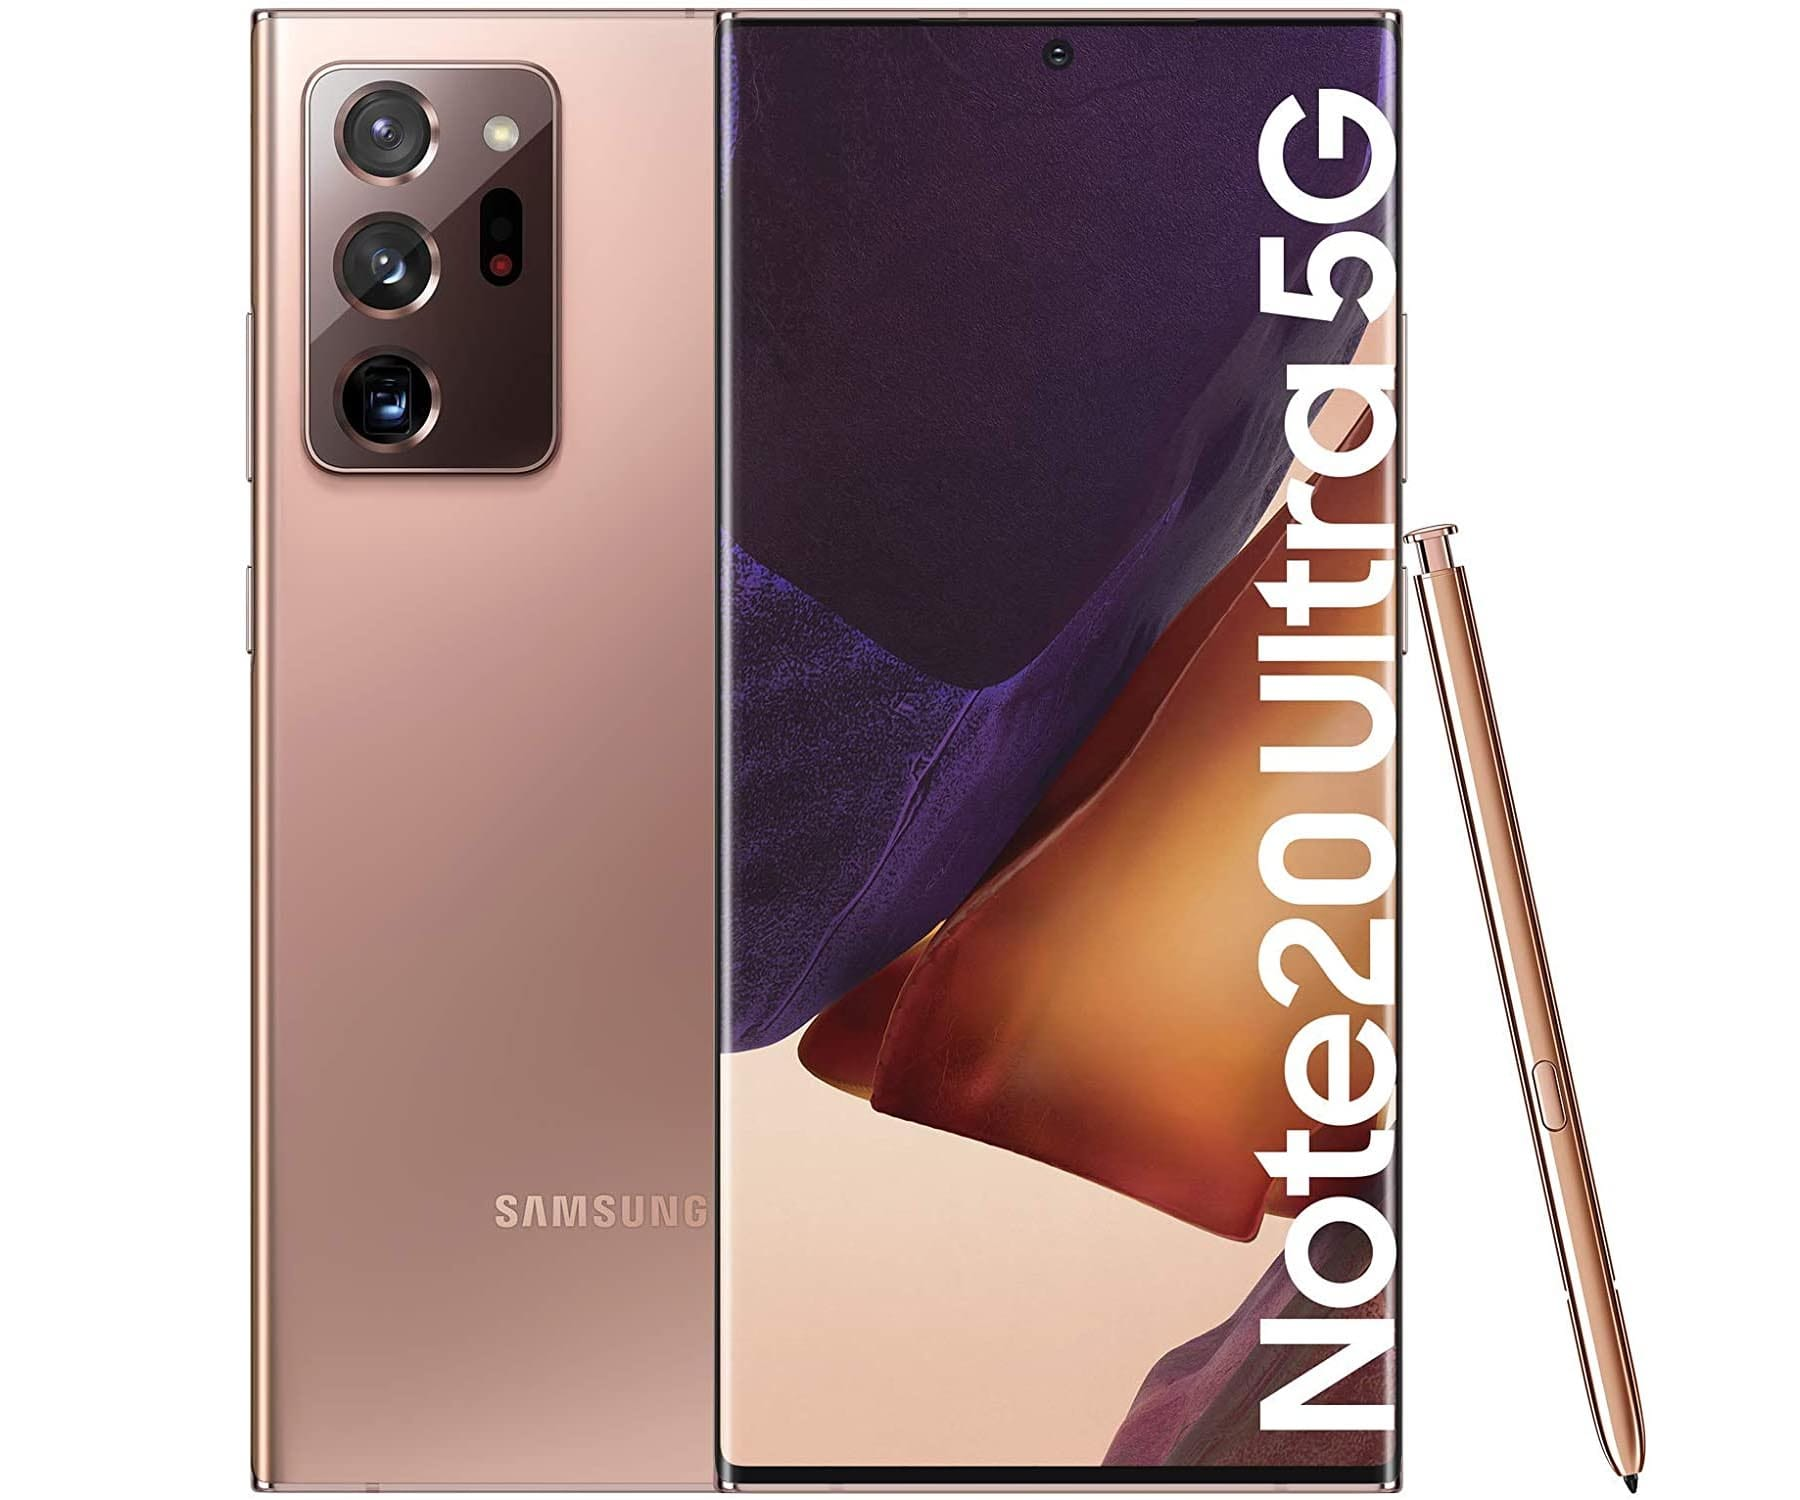 SAMSUNG GALAXY NOTE 20 ULTRA BRONCE MÓVIL DUAL SIM 5G 6.9'' SUPER AMOLED 120Hz 2K OCTACORE 256GB 12GB RAM TRICAM 108MP SELFIES 10MP